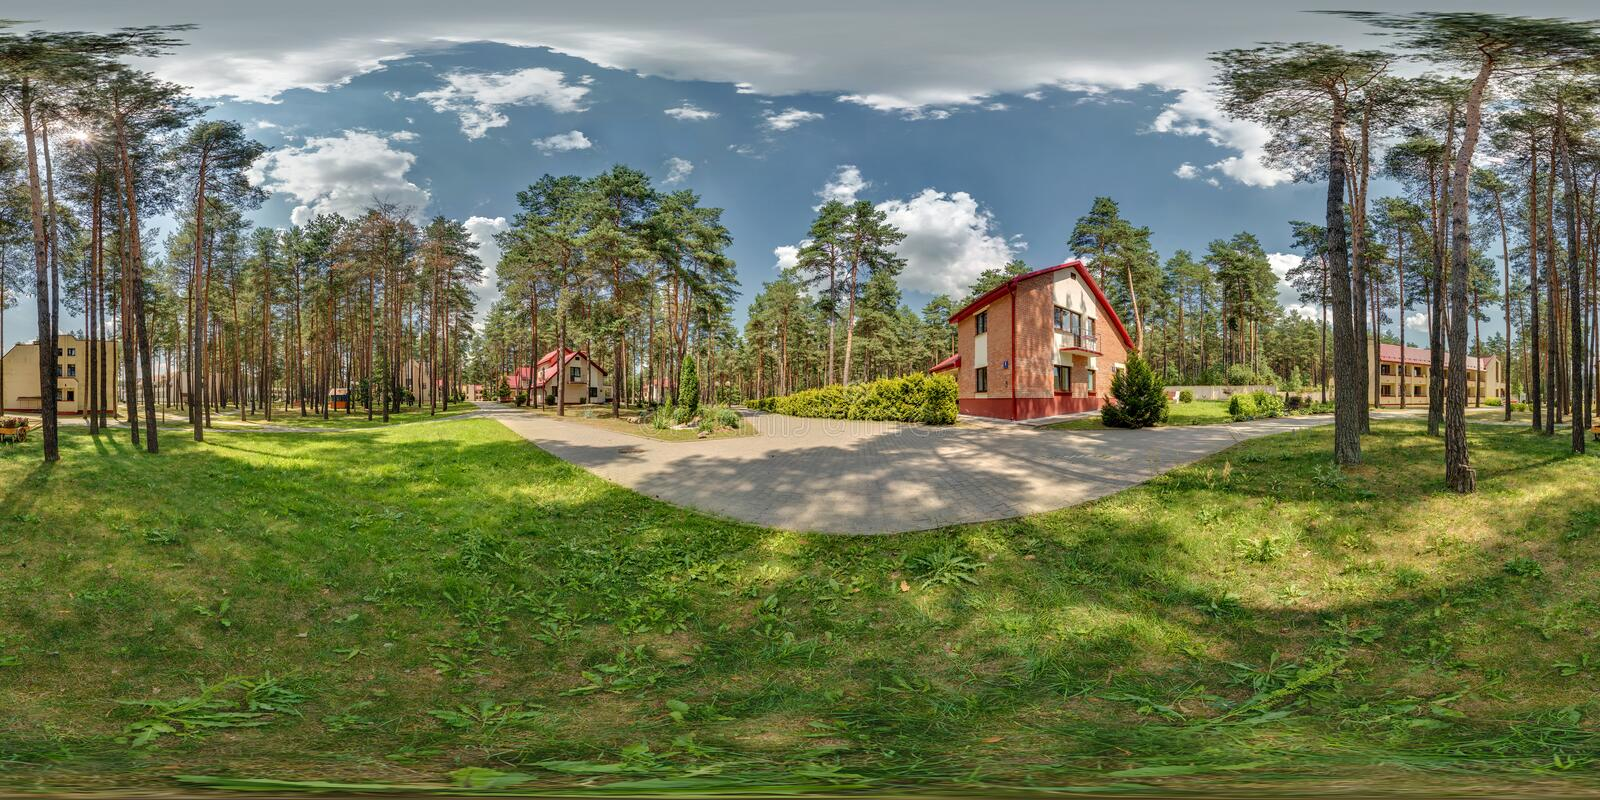 GRODNO , BELARUS - JUNE 6, 2013: Full 360 degree seamless panorama in equirectangular spherical projection near vacation home in royalty free stock images